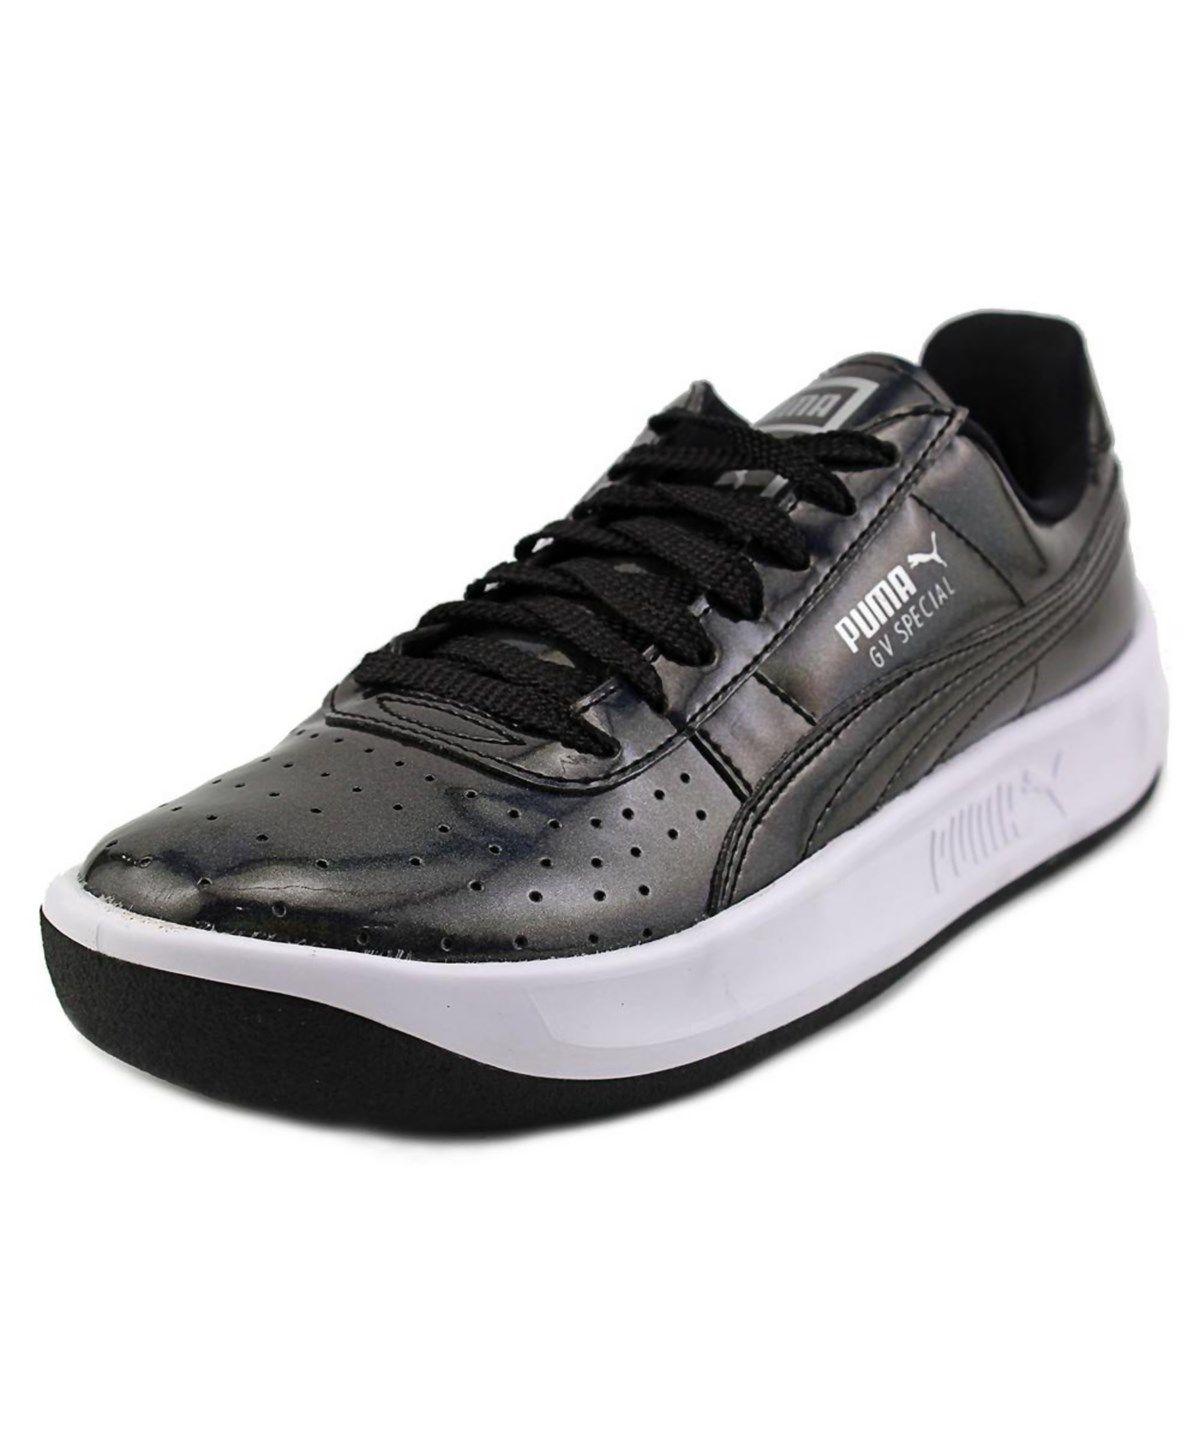 aac6f7caeda PUMA PUMA GV SPECIAL IRIDESENT MEN ROUND TOE SYNTHETIC BLACK ...